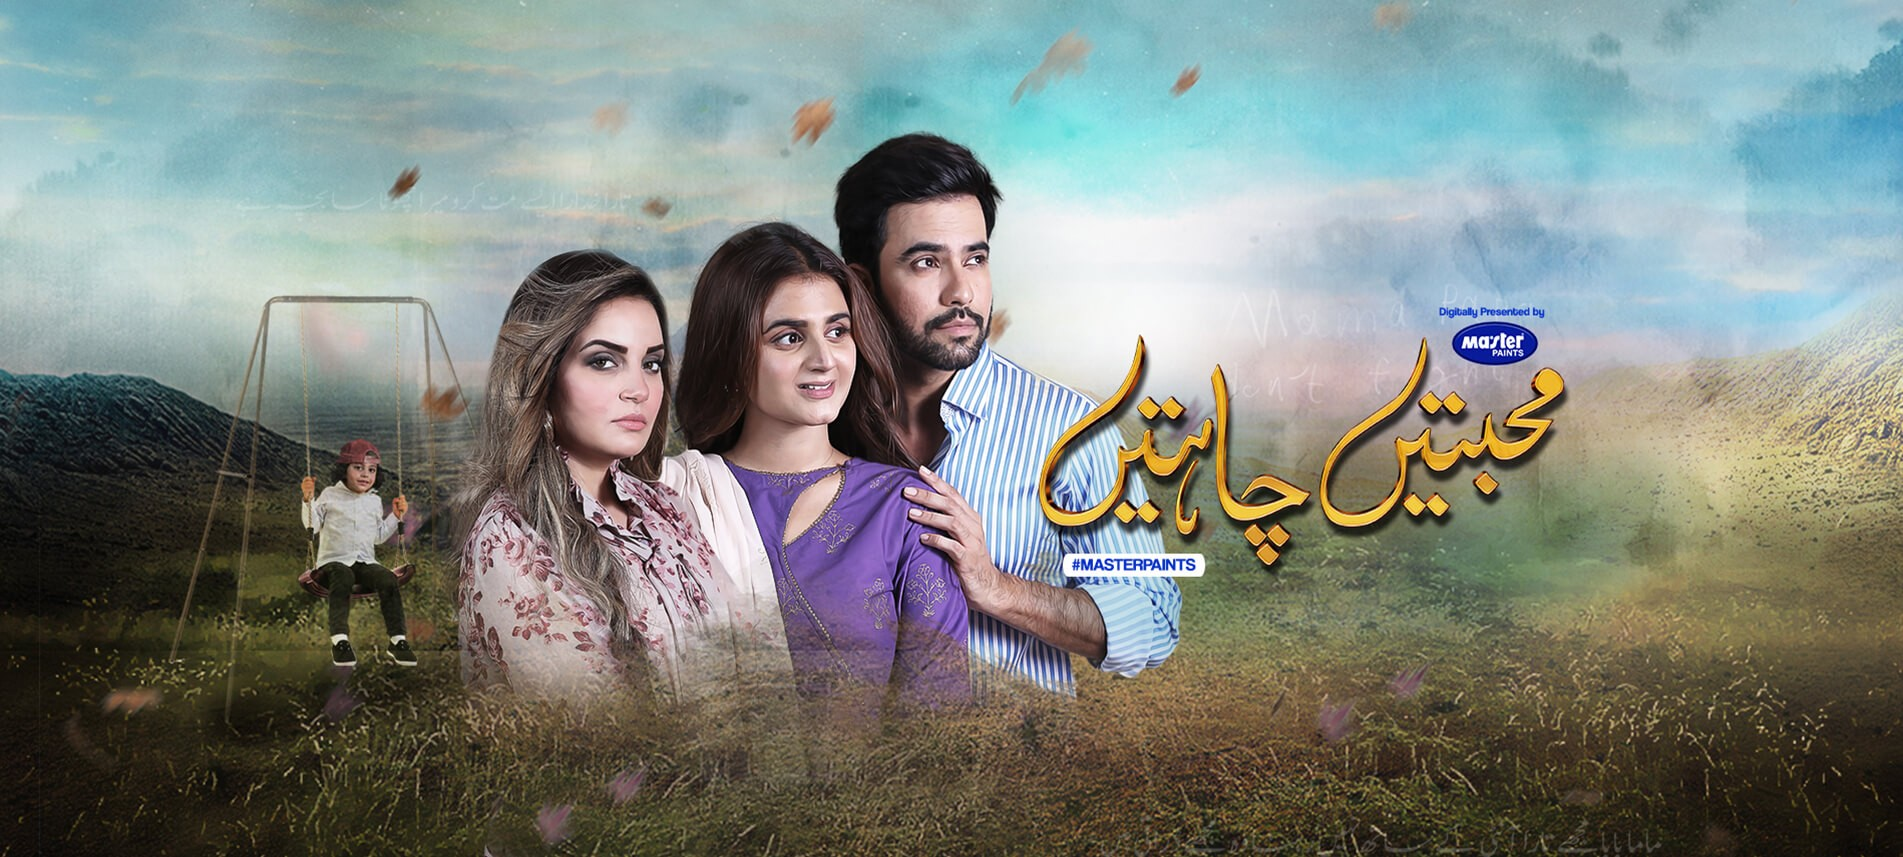 Have you been looking forward to some more entertainment packages to hit your screens? Well... the good news is that along with some of the best new dramas already going on air, new dramas are also making way to screens. Mushk and Prem Gali are doing wonders while capturing the viewers with every bit of each episode. That's why we can't resist referring to these drama serials every time again to include in your watch list. Along with these blockbuster serials, here we have got a list of top 10 new dramas that you must watch. Take a look at this list! The Top New Dramas That You Must Watch! Check out this list and a brief description of dramas that you must watch this season. These dramas can make you have the best dose of entertainment. 1. Mohabbatein Chahatein Drama serial Mohabbatein Chahatein is another love story with some twists. The first episode of this drama has gone on air on Monday, 3rd November. The main cast of Mohabbatein Chahatein includes Armeena Rana Khan, Junaid Khan, and Hira Mani. As soon as Kashf winded up with an unforgettable last episode, this new drama has got the same slot. So, we will be watching Hira Mani and Junaid Khan together once again every Tuesday at 08:00 PM on Hum TV. 2. Meray Dost Meray Yaar Season 2 This drama is more of a short-term play that is full of fun and excitement focusing on the friendship bonds at the university campus. The story mainly revolves around the passion for music and the way the friends take it to the next level with their efforts. Mehreen Jabbar has put all her efforts to make it an entertainment package for the evening slot when everyone prefers to turn on the television and sit together. It is a must-watch because it is different from all other dramas. The main cast of this play includes Hania Amir, Asim Azhar, Ali Hamza, Asad Siddiqui, Maryam Nafees, and Usama Khan. You can watch this drama on Hum TV every Saturday at 7:30 PM. 3. Be-Adab Another drama serial that is soon going to hit the screens is Be-A